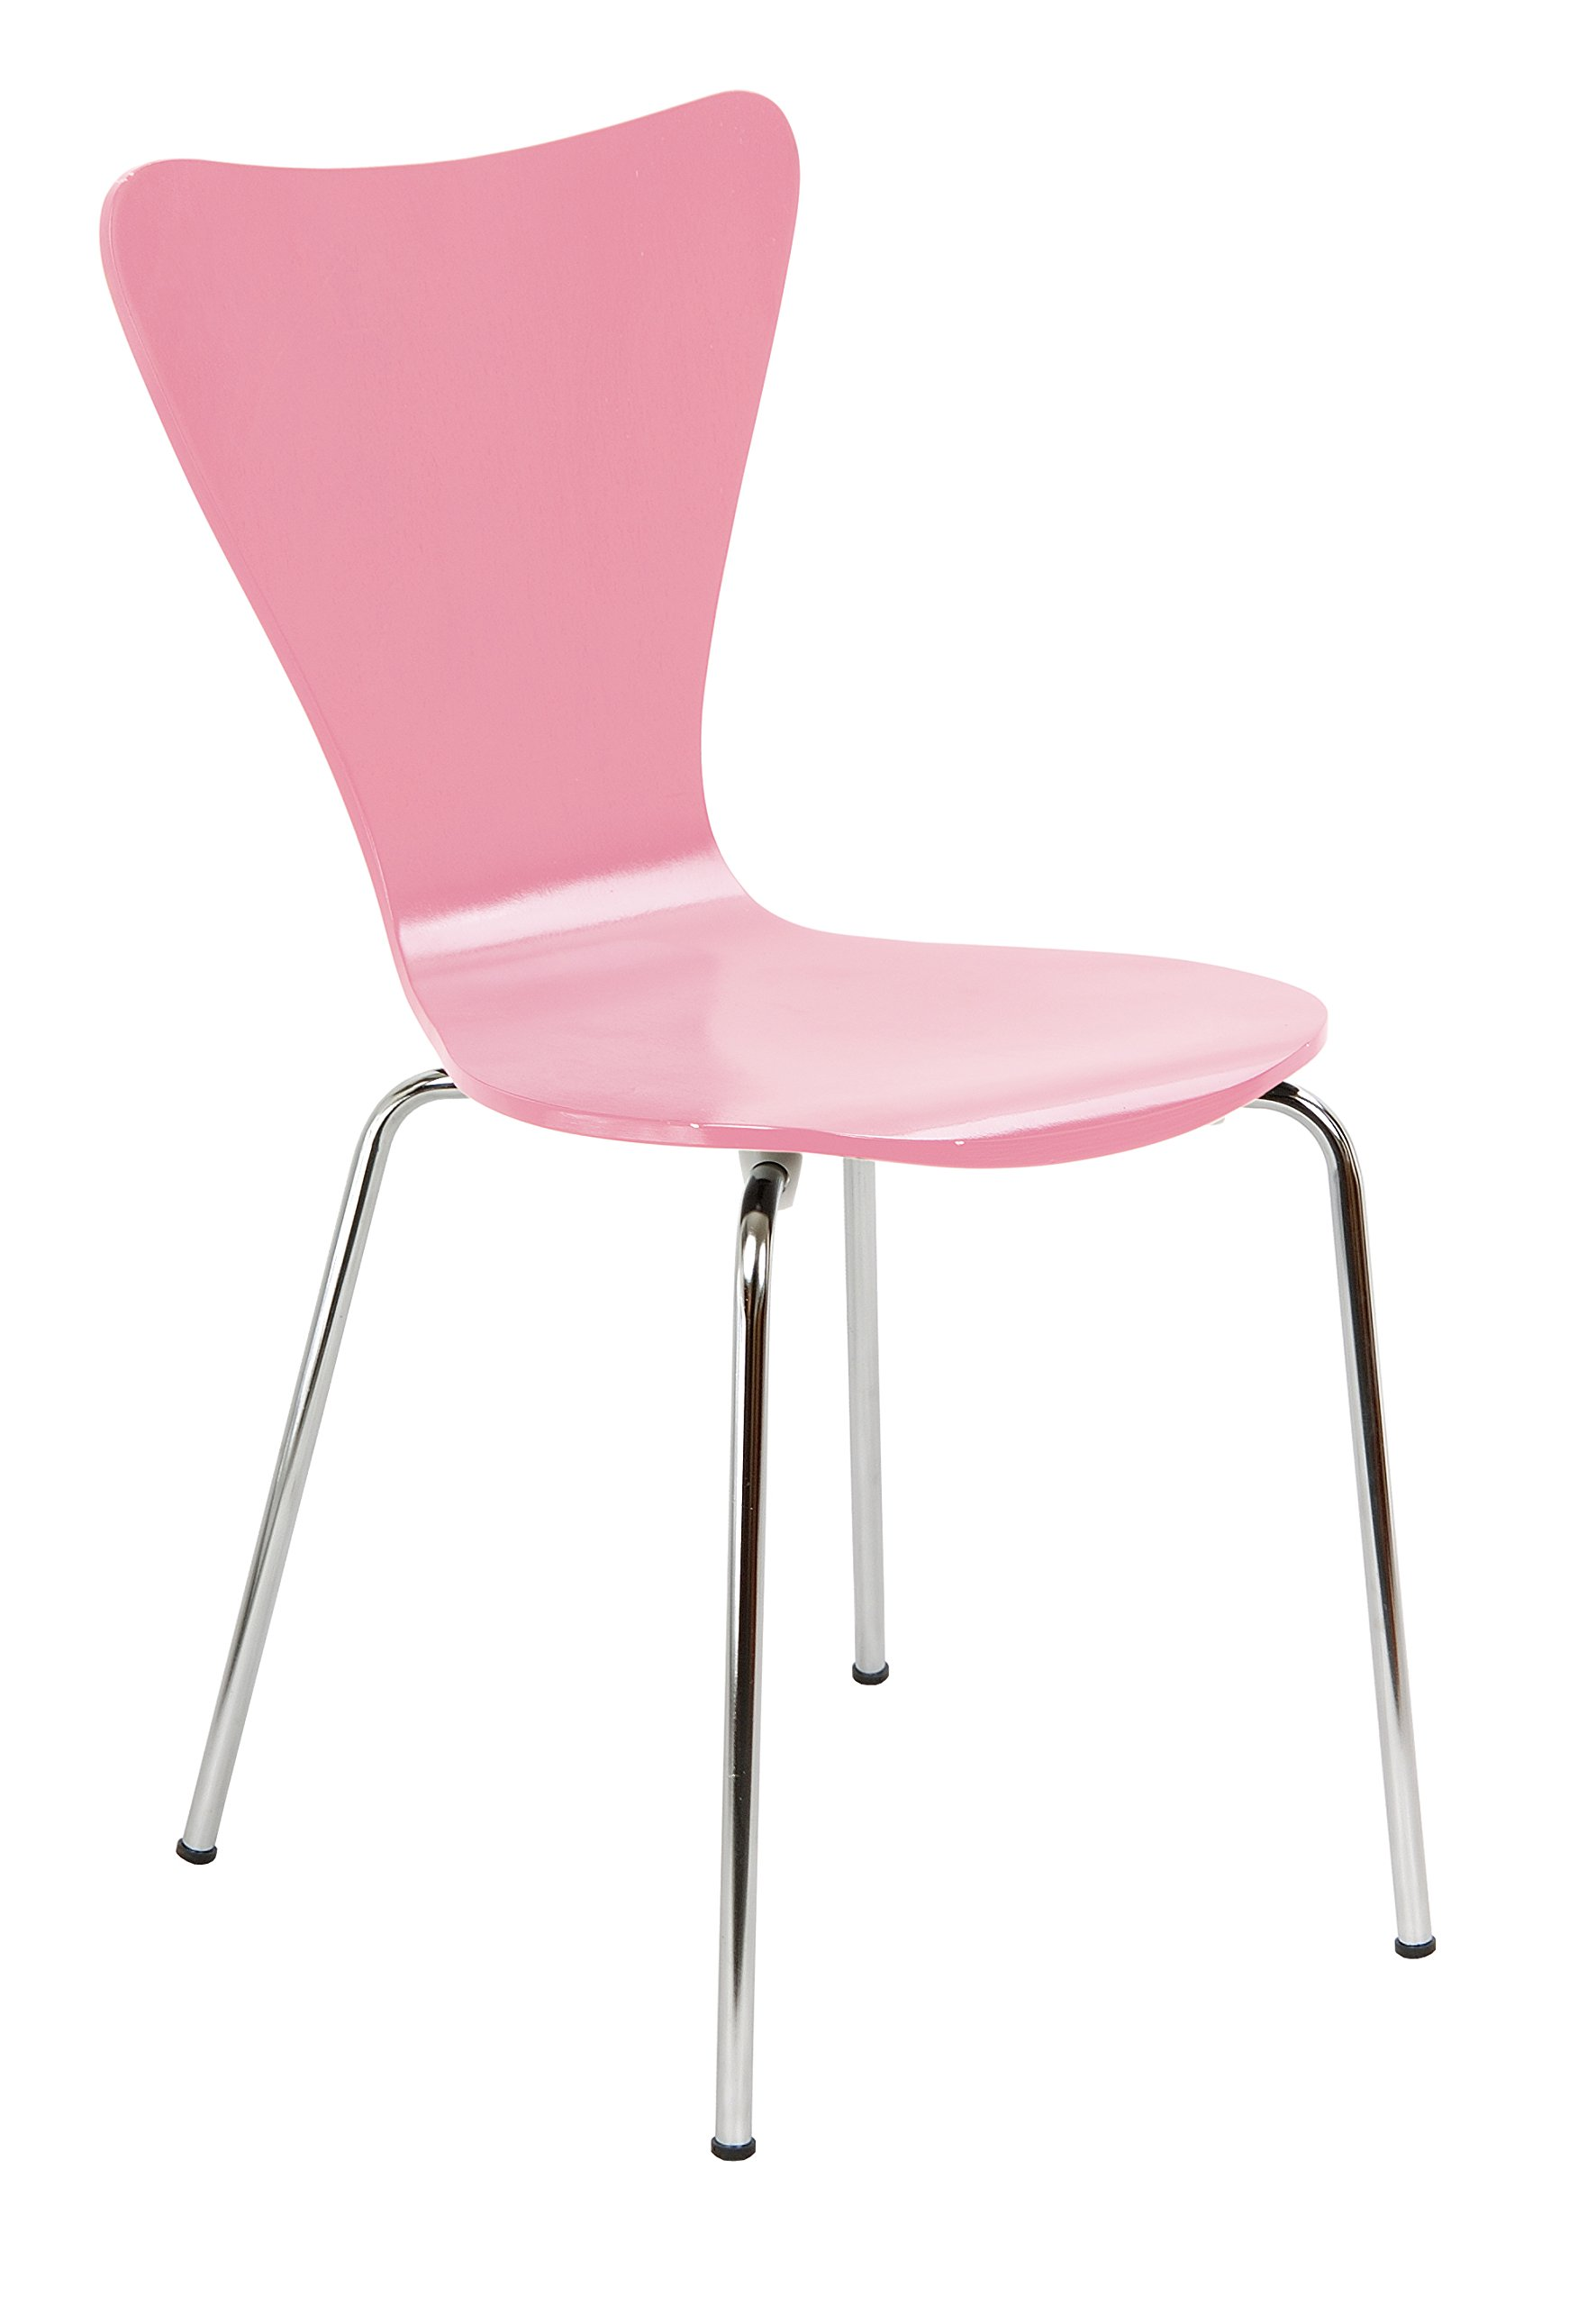 Legare LEGE-CHSM-110 Bent Plywood Chair, Pink